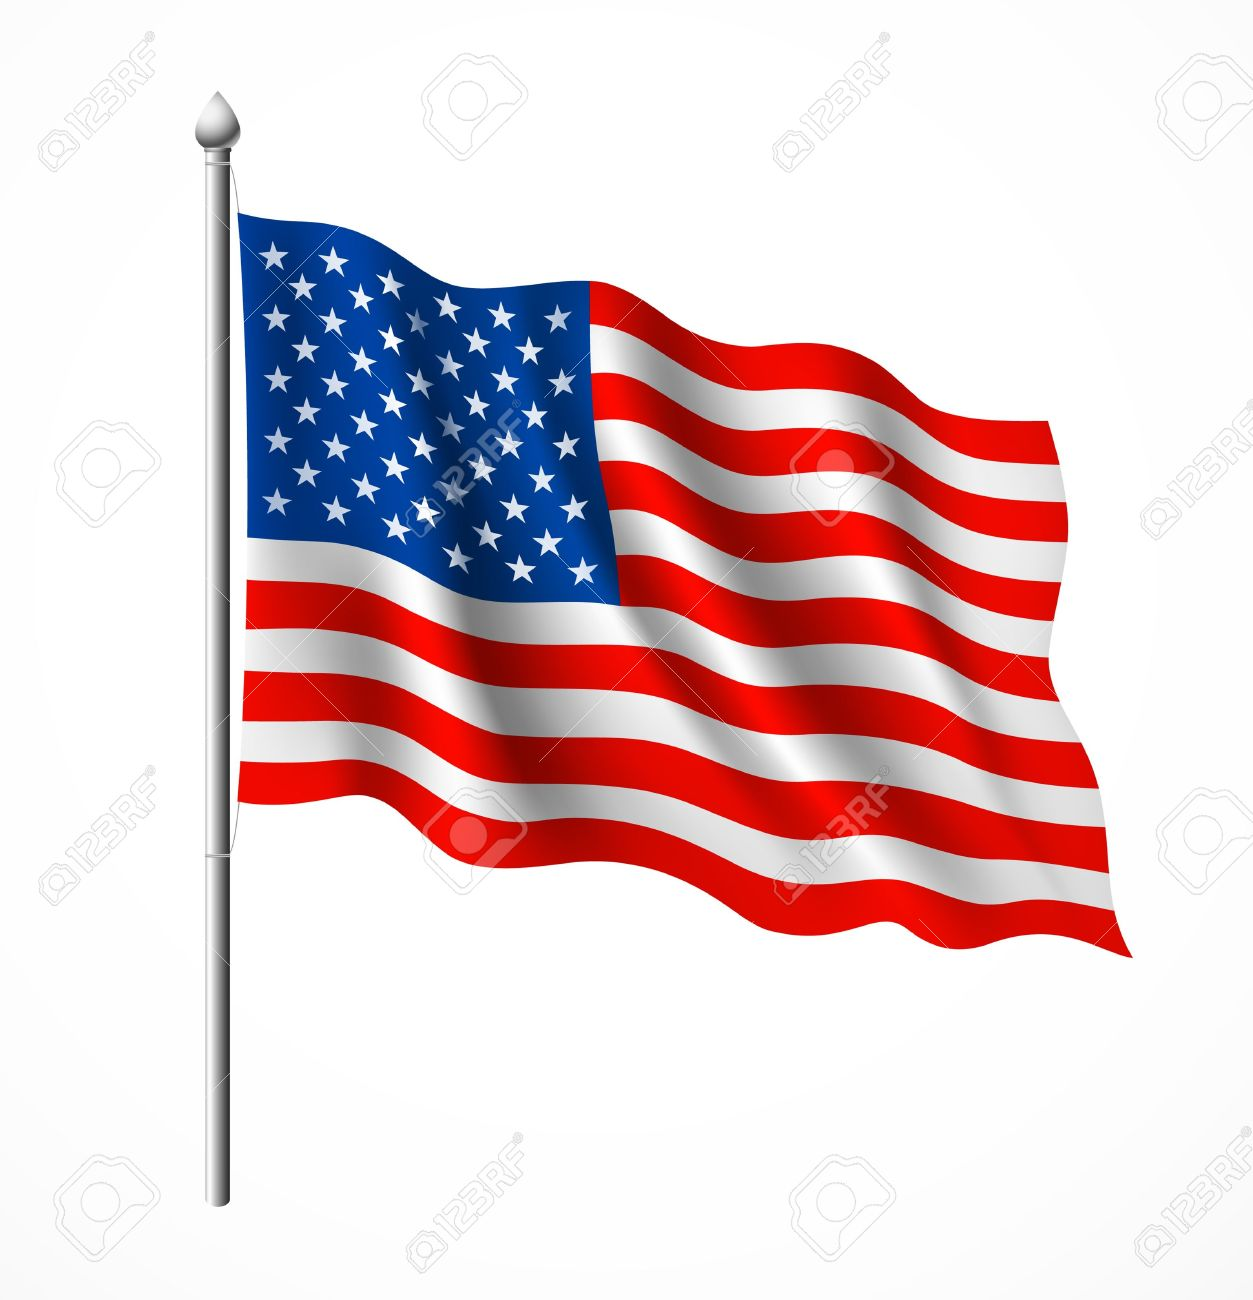 Flag of American, vector illustration Stock Vector - 14615695